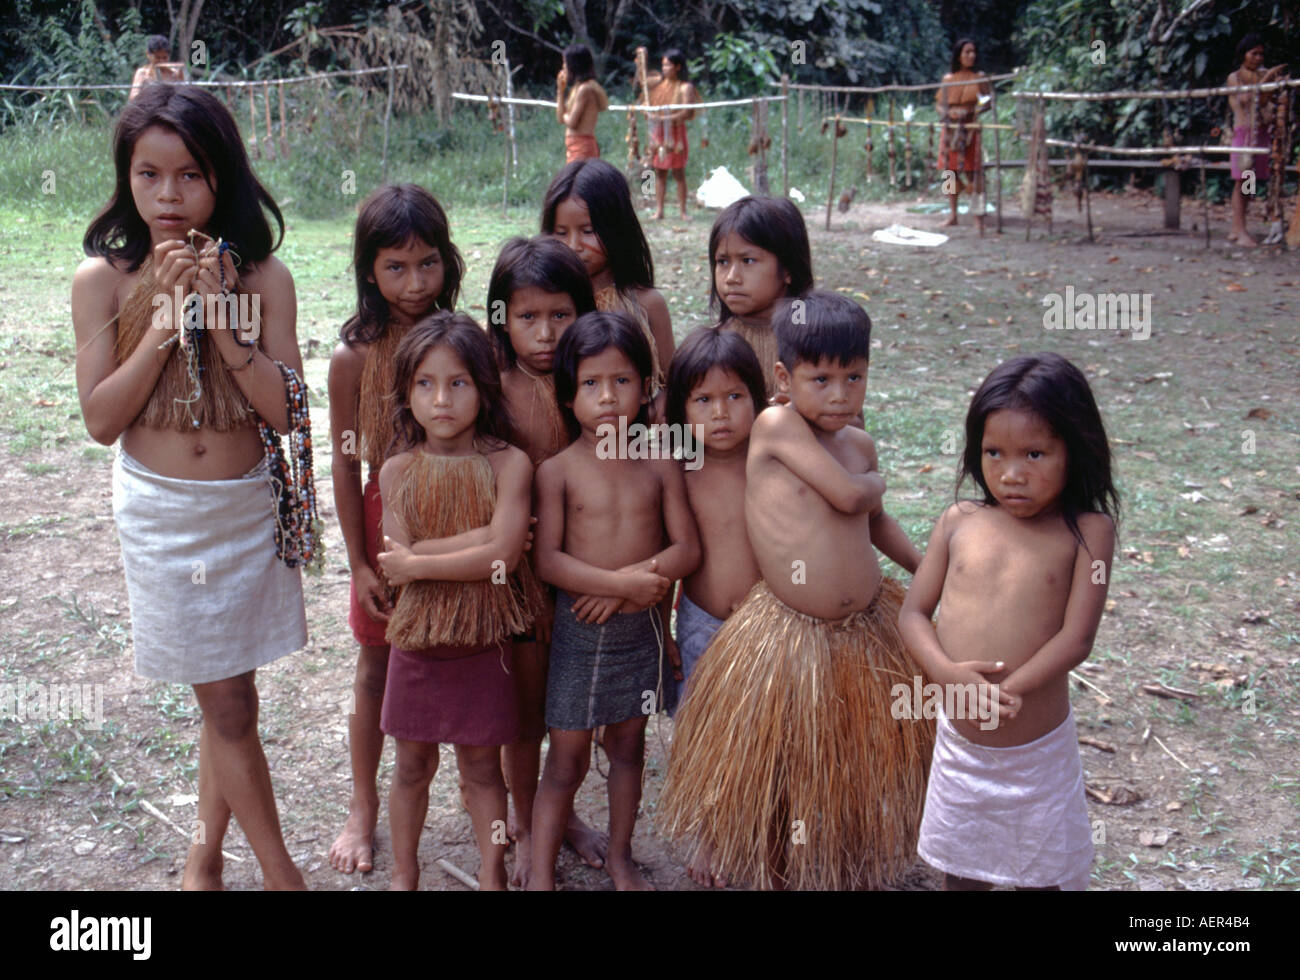 children from the yagua tribe in the amazon region of peru